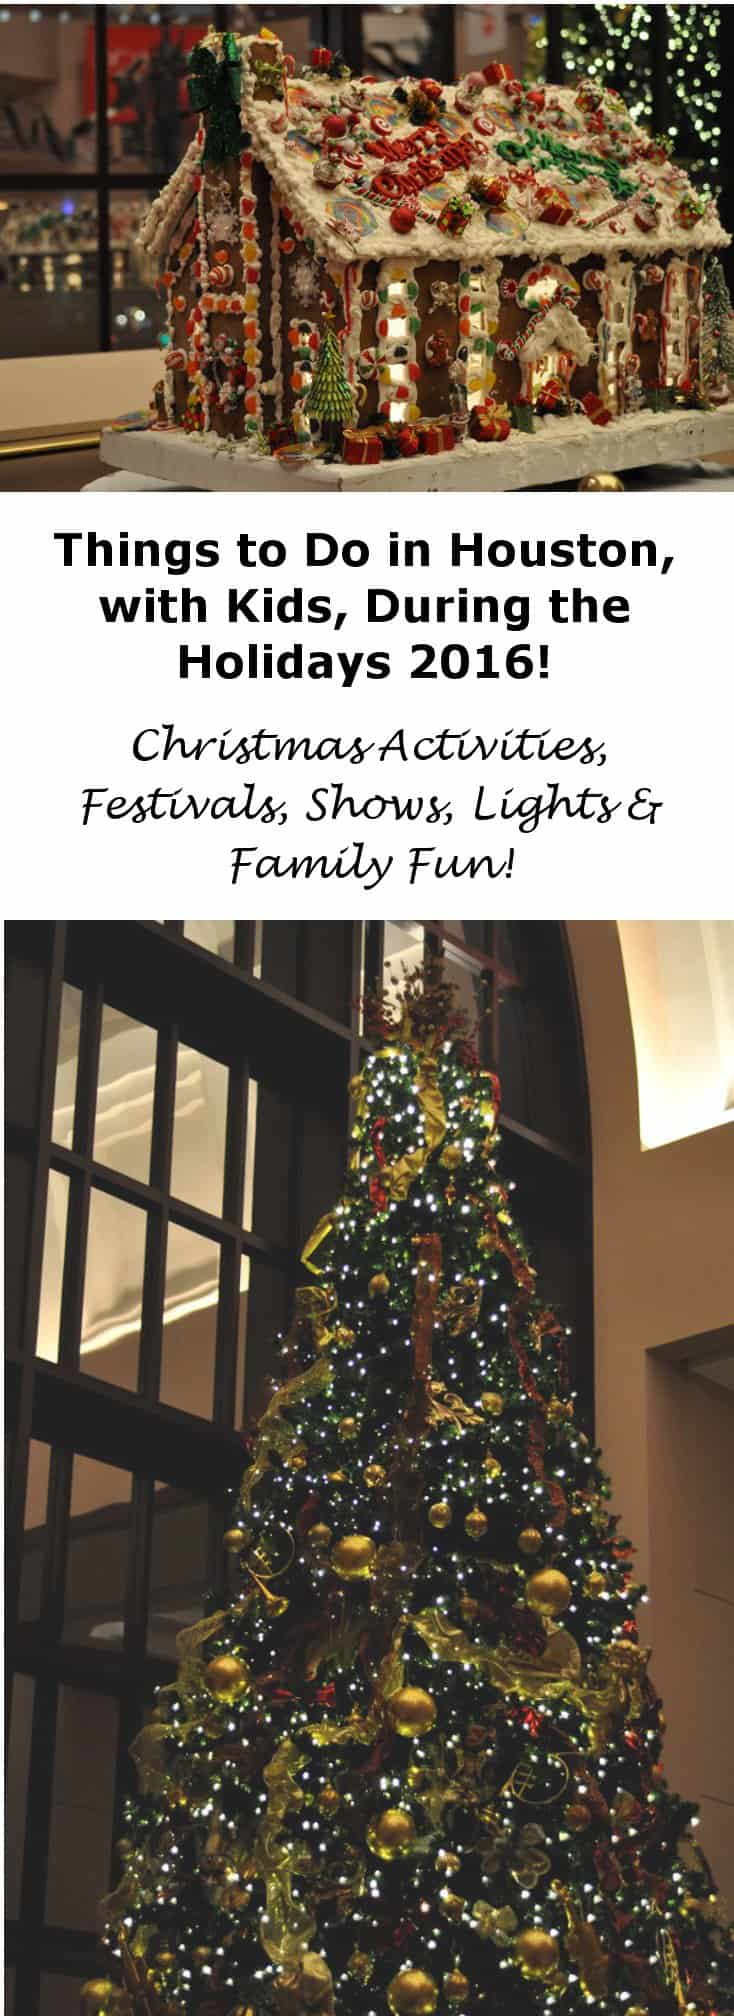 Things to do in Houston with Kids for the Holidays 2016 Christmas Festivals Shows and More